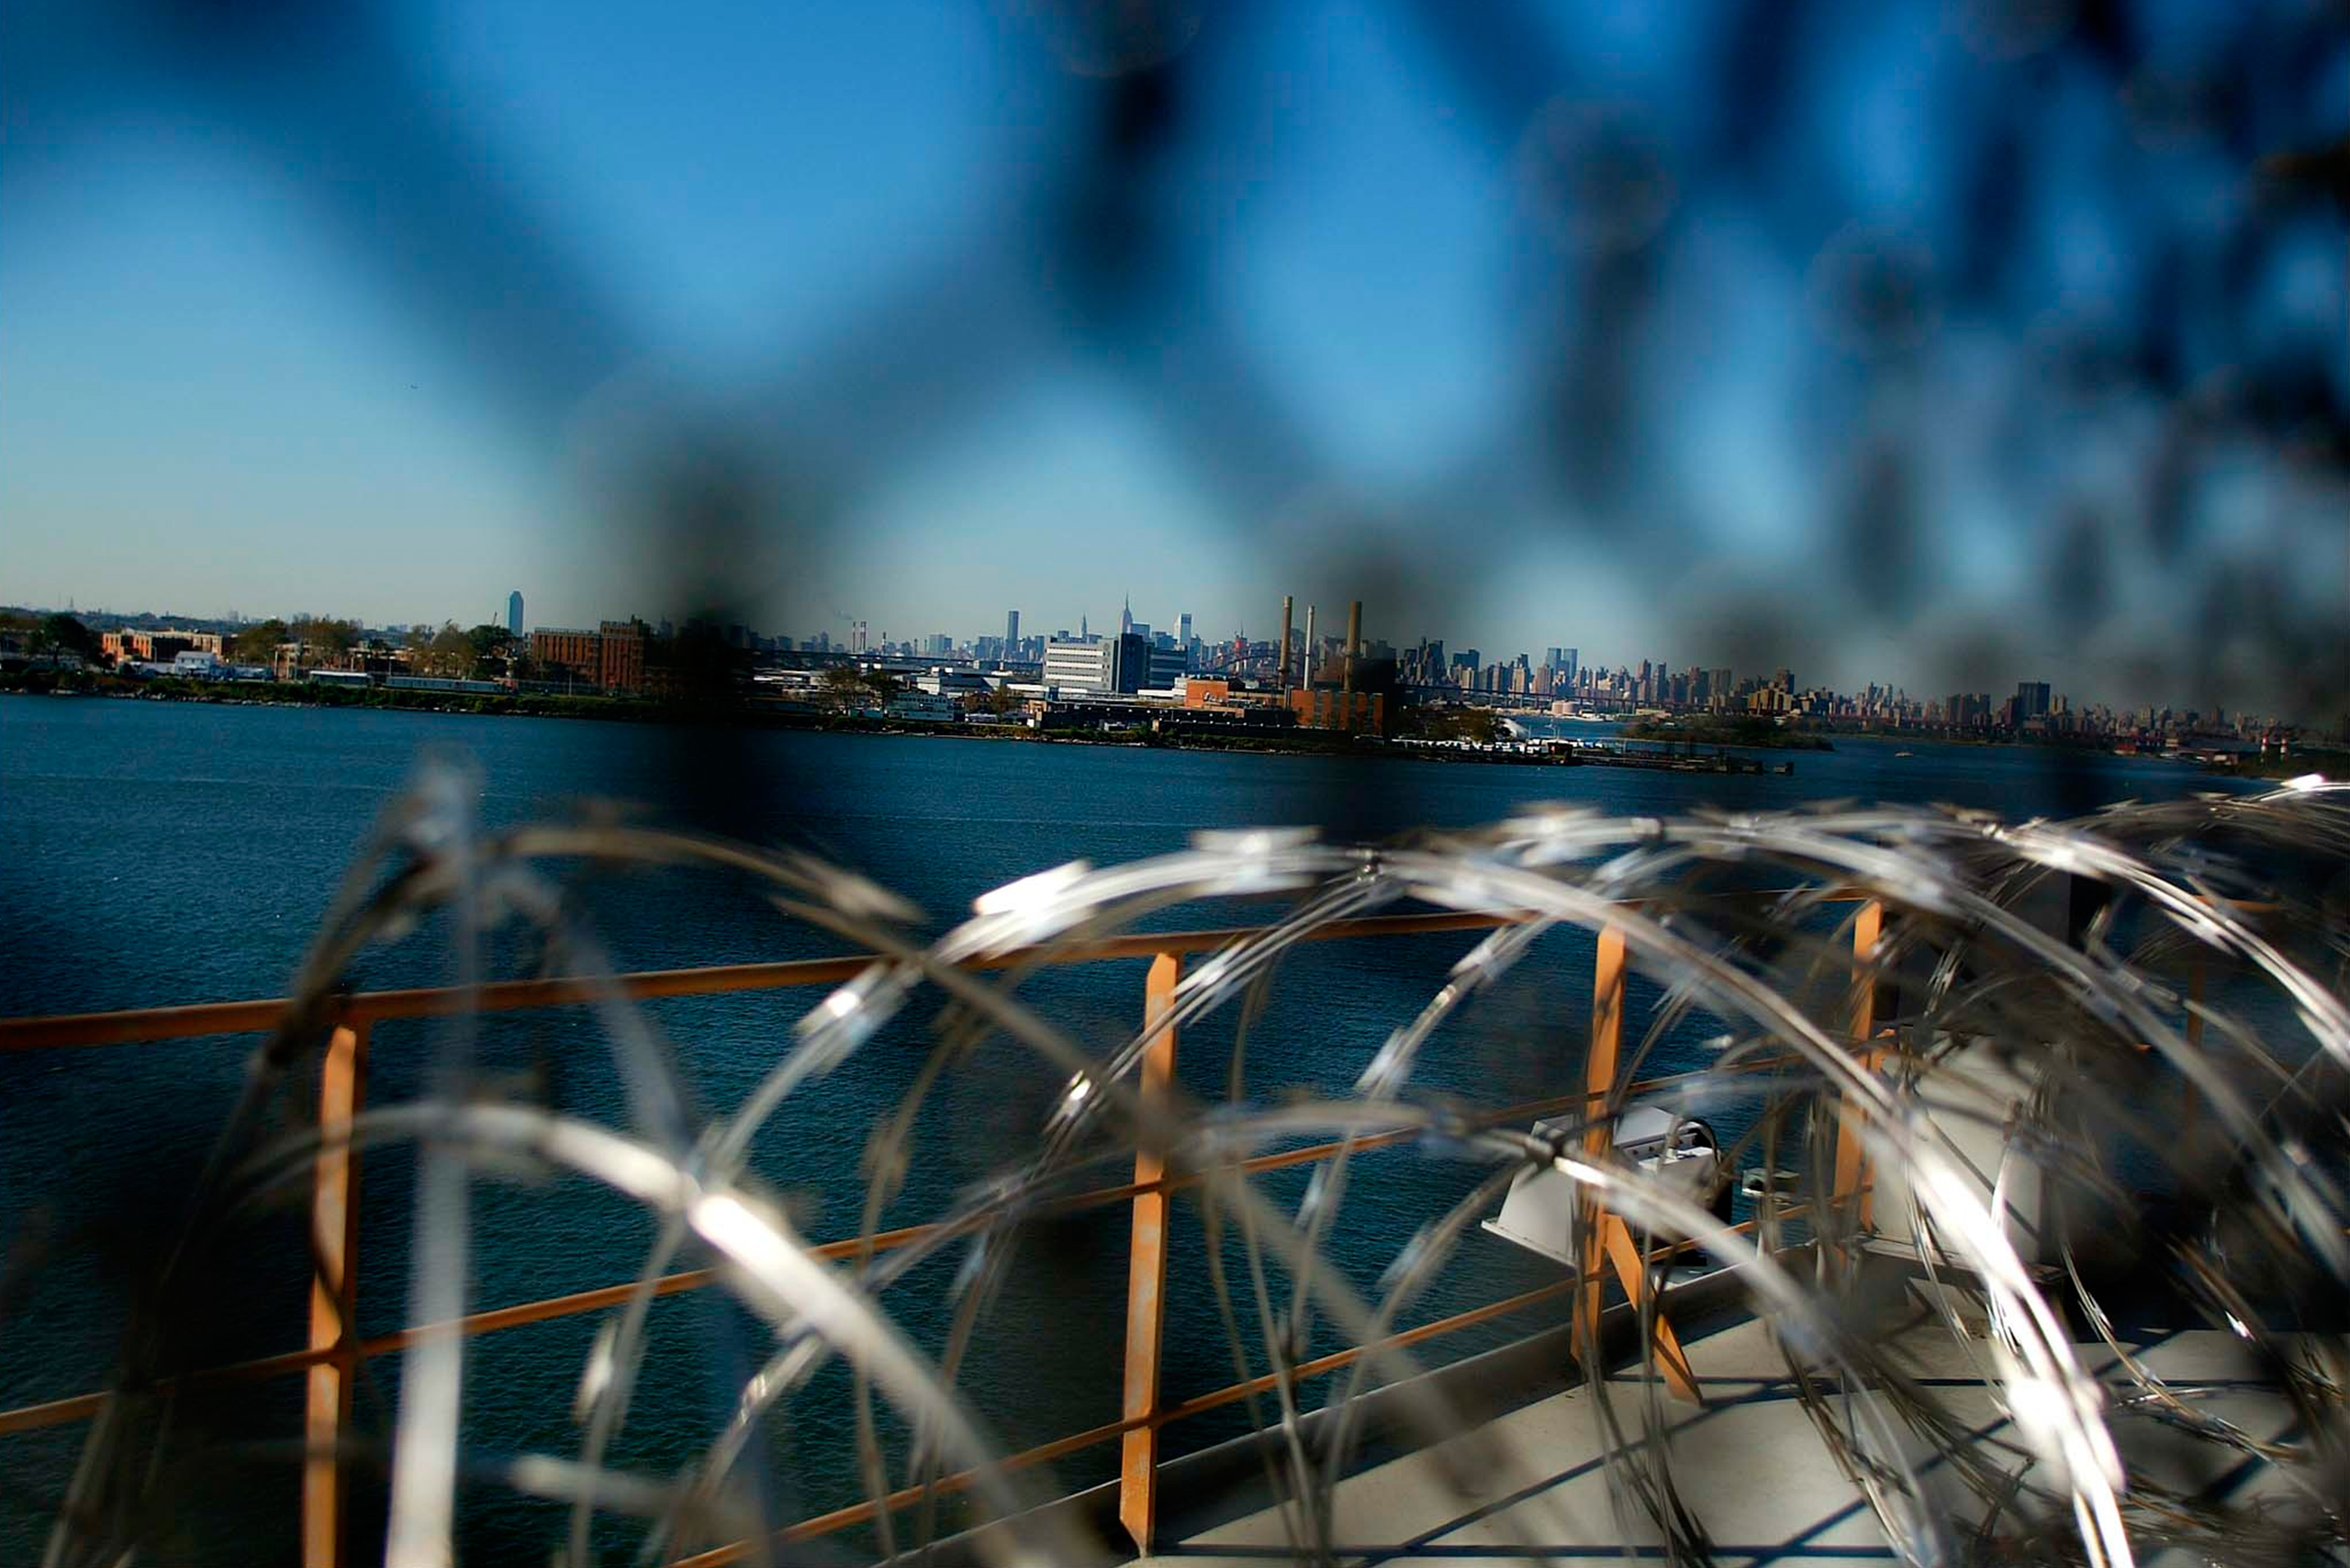 View of Manhattan from the Vernon C. Bain Correctional Center at Rikers Island, in the Bronx.